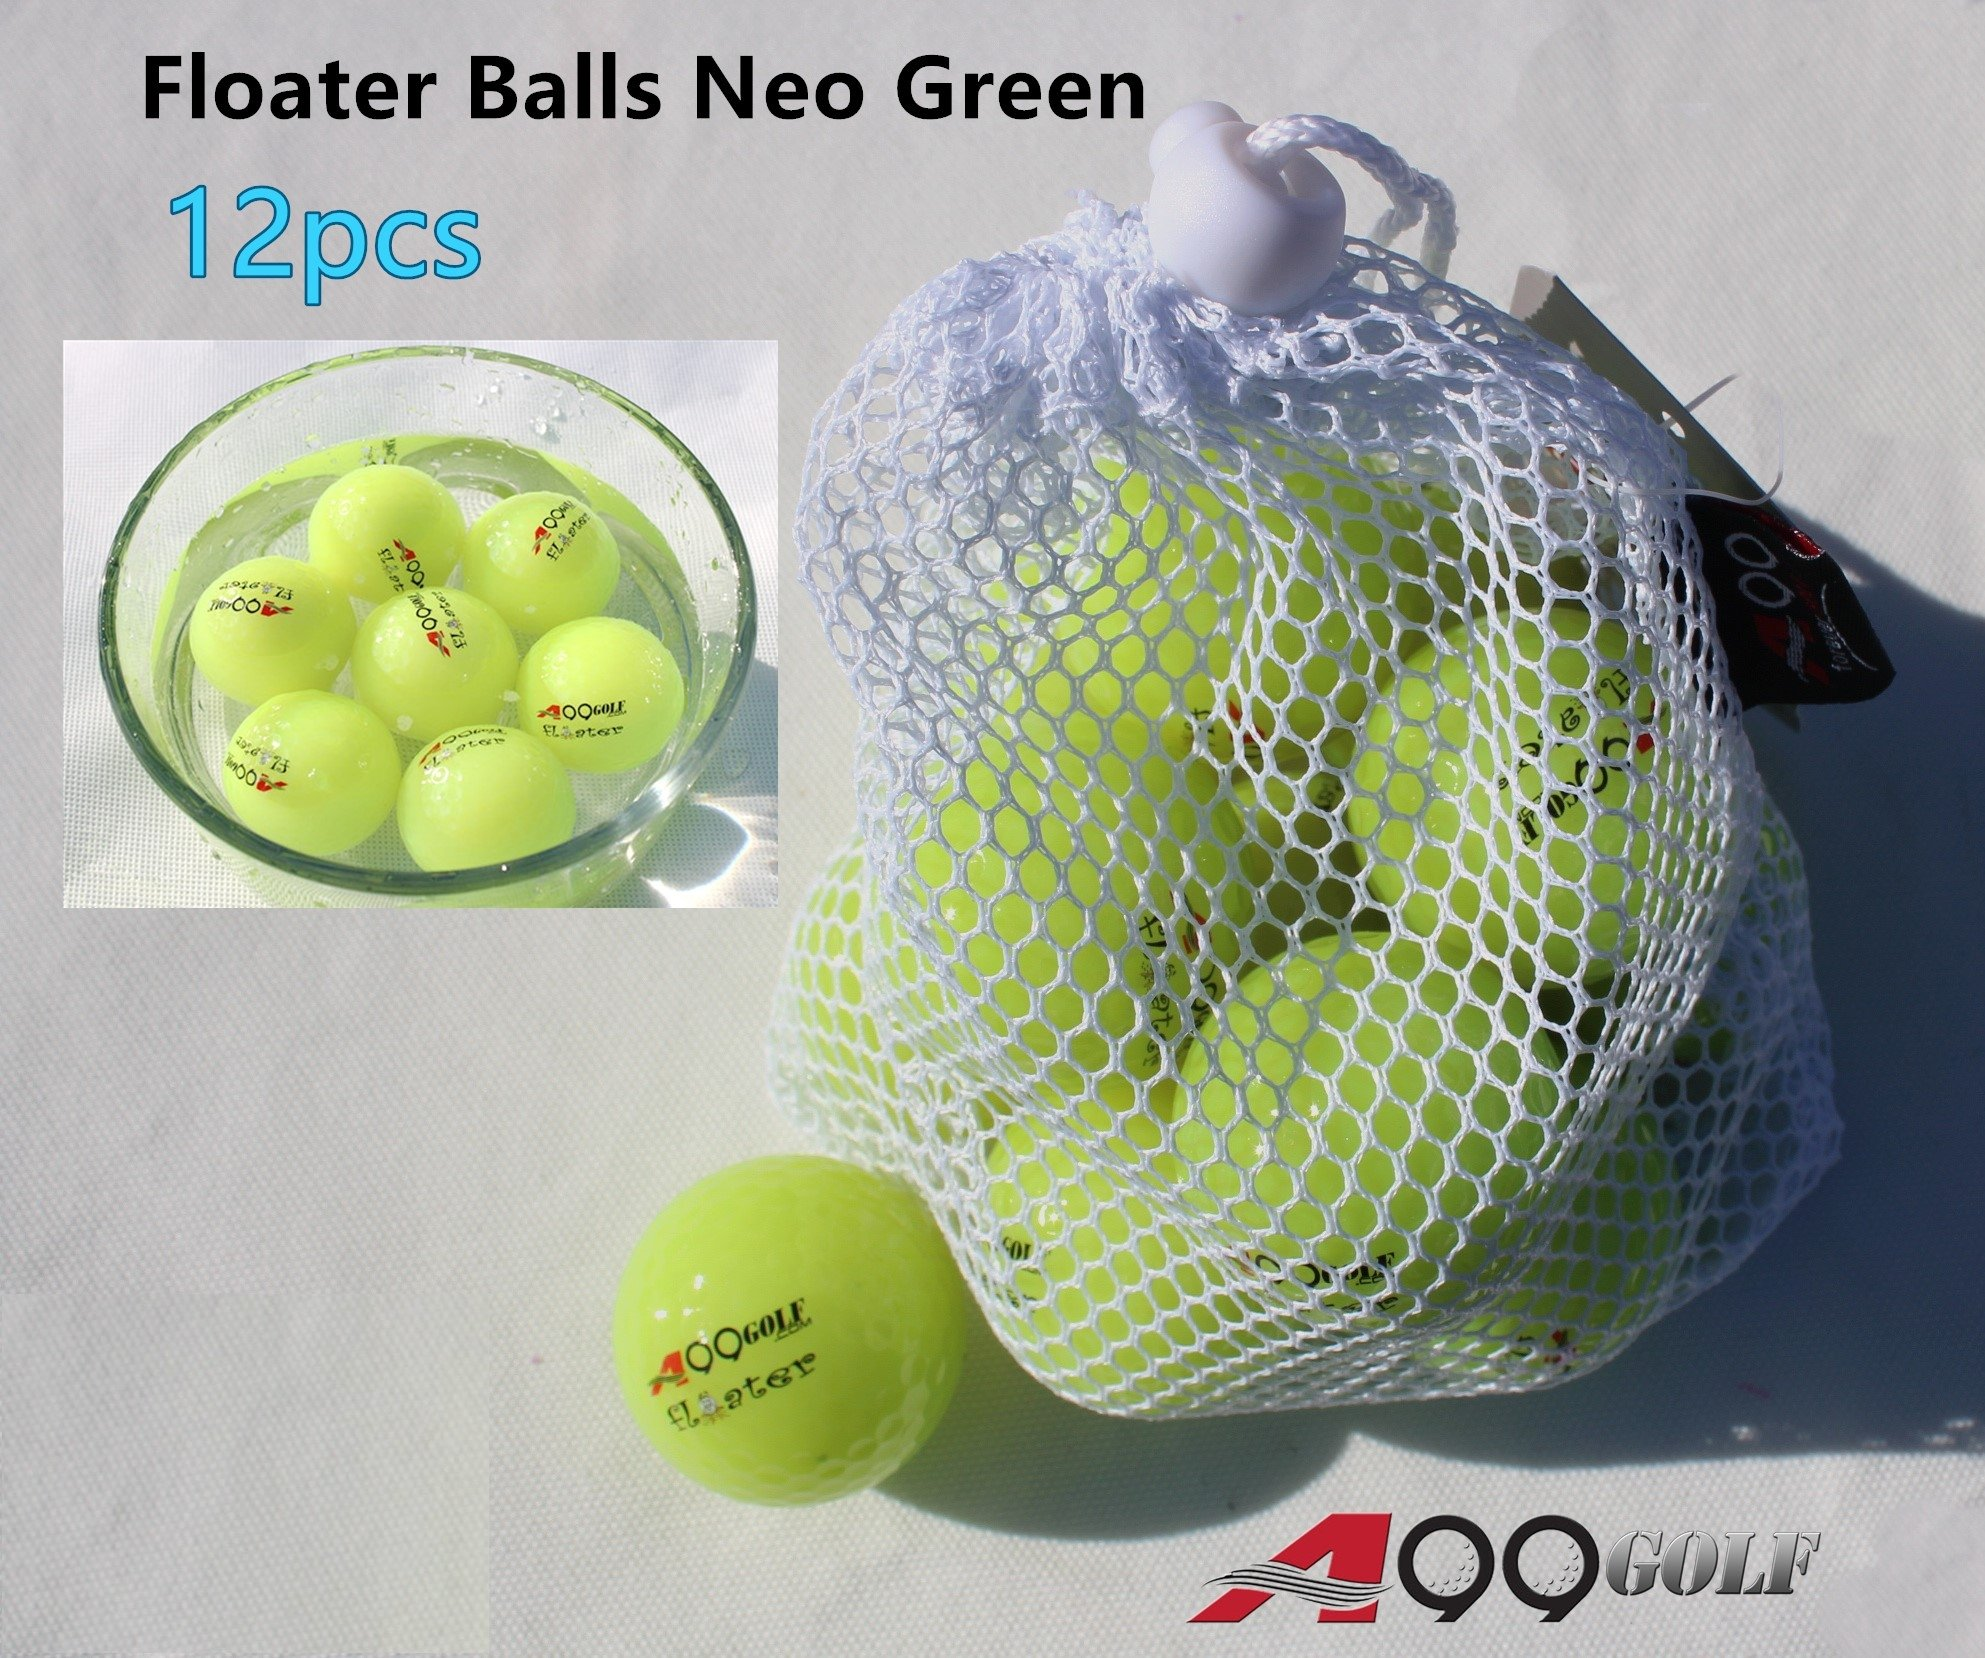 A99 Floating Golf Balls Floater Ball Float Water Range New (Neo Green 12 Balls/Pack) by A99 Golf